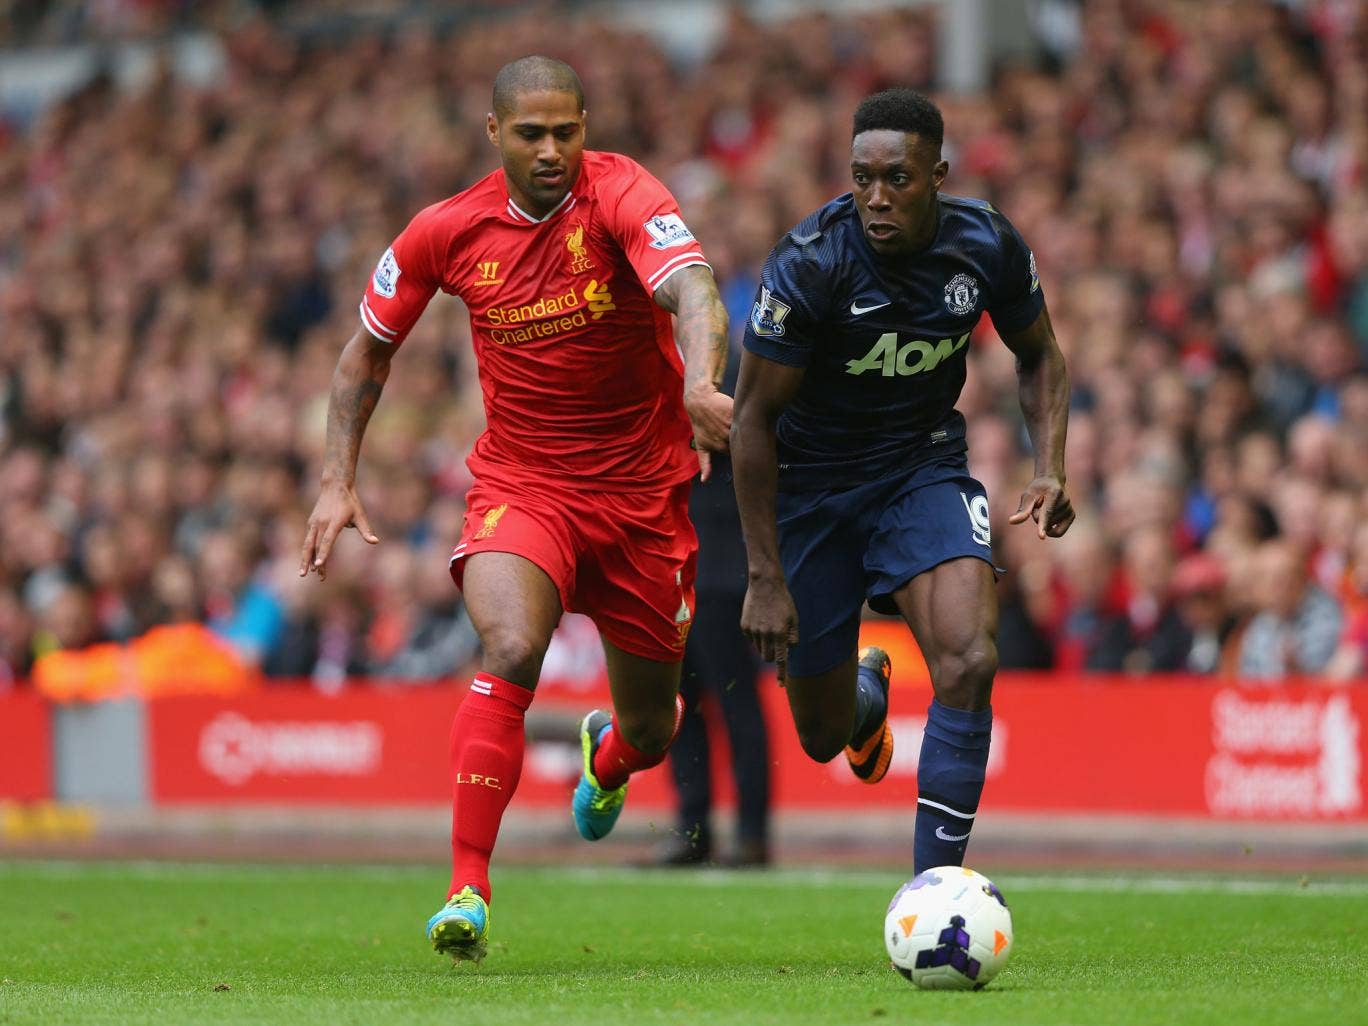 Glen Johnson of Liverpool challenges Manchester United's Danny Welbeck